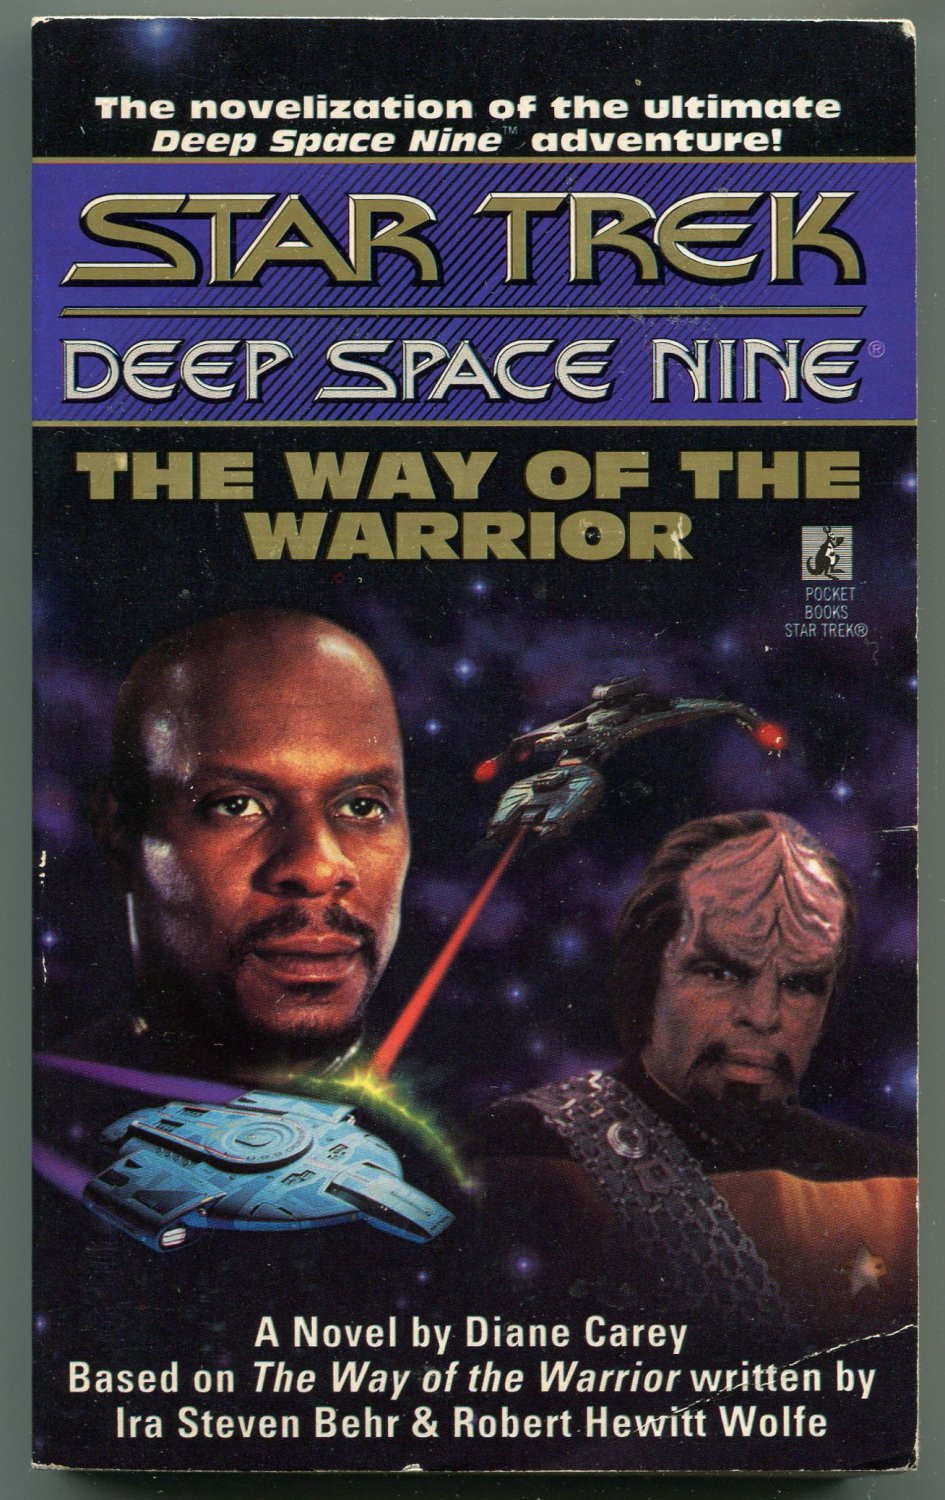 Star Trek DS9 THE WAY OF THE WARRIOR Diane Carey First Printing